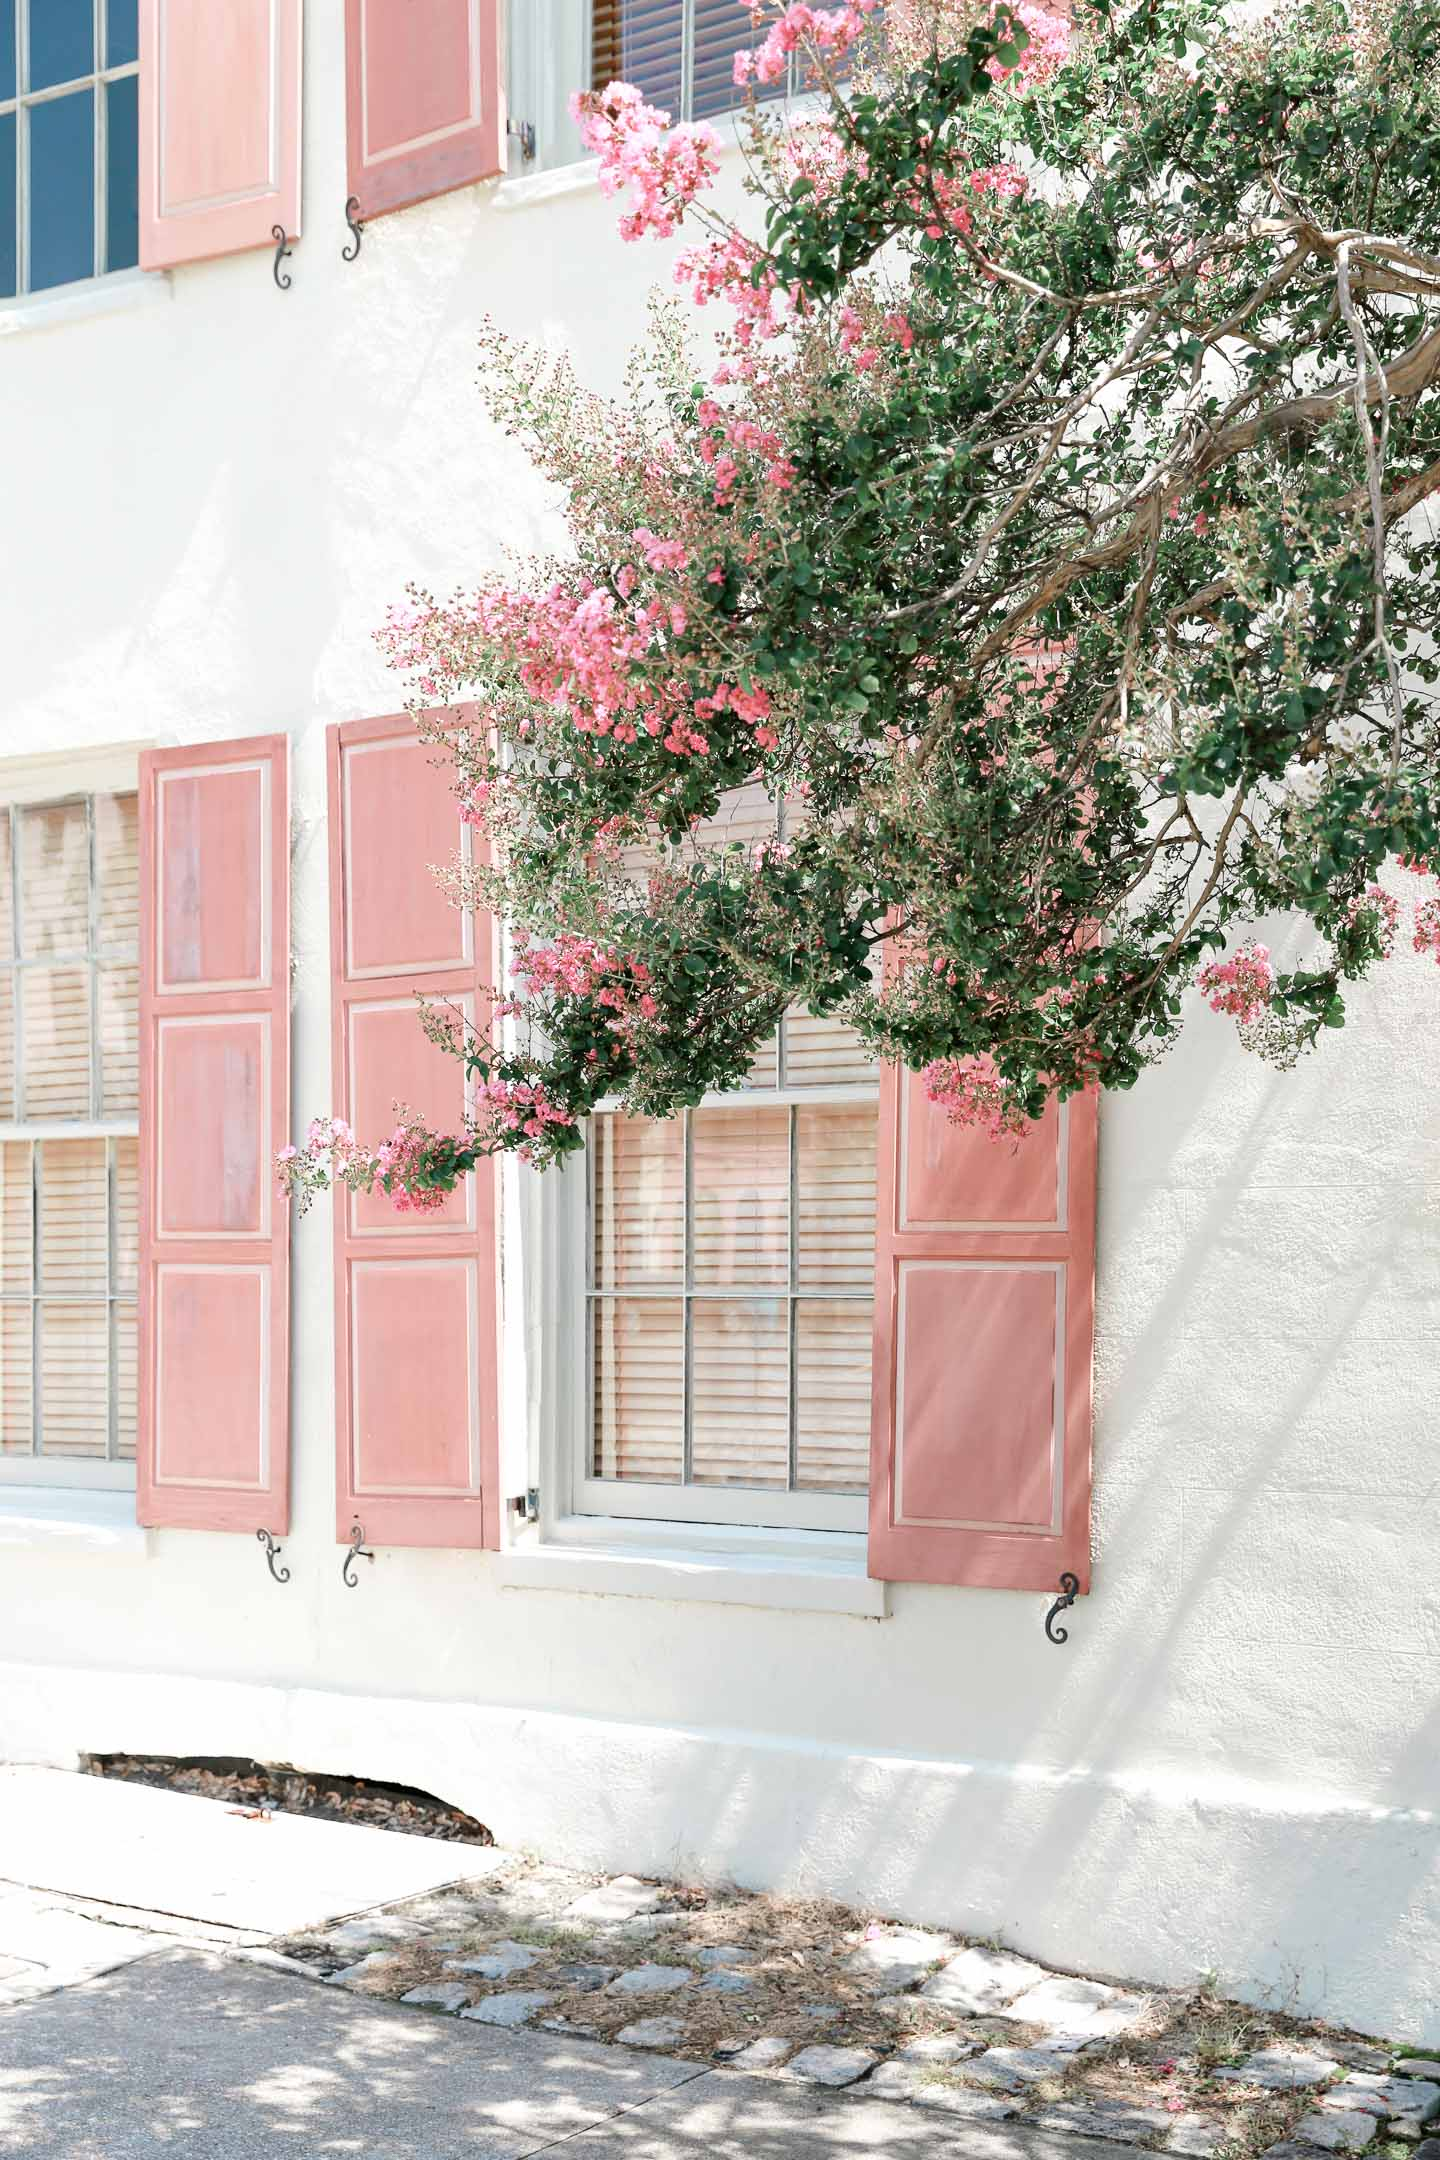 A white stucco building with pink shutters in Charleston.